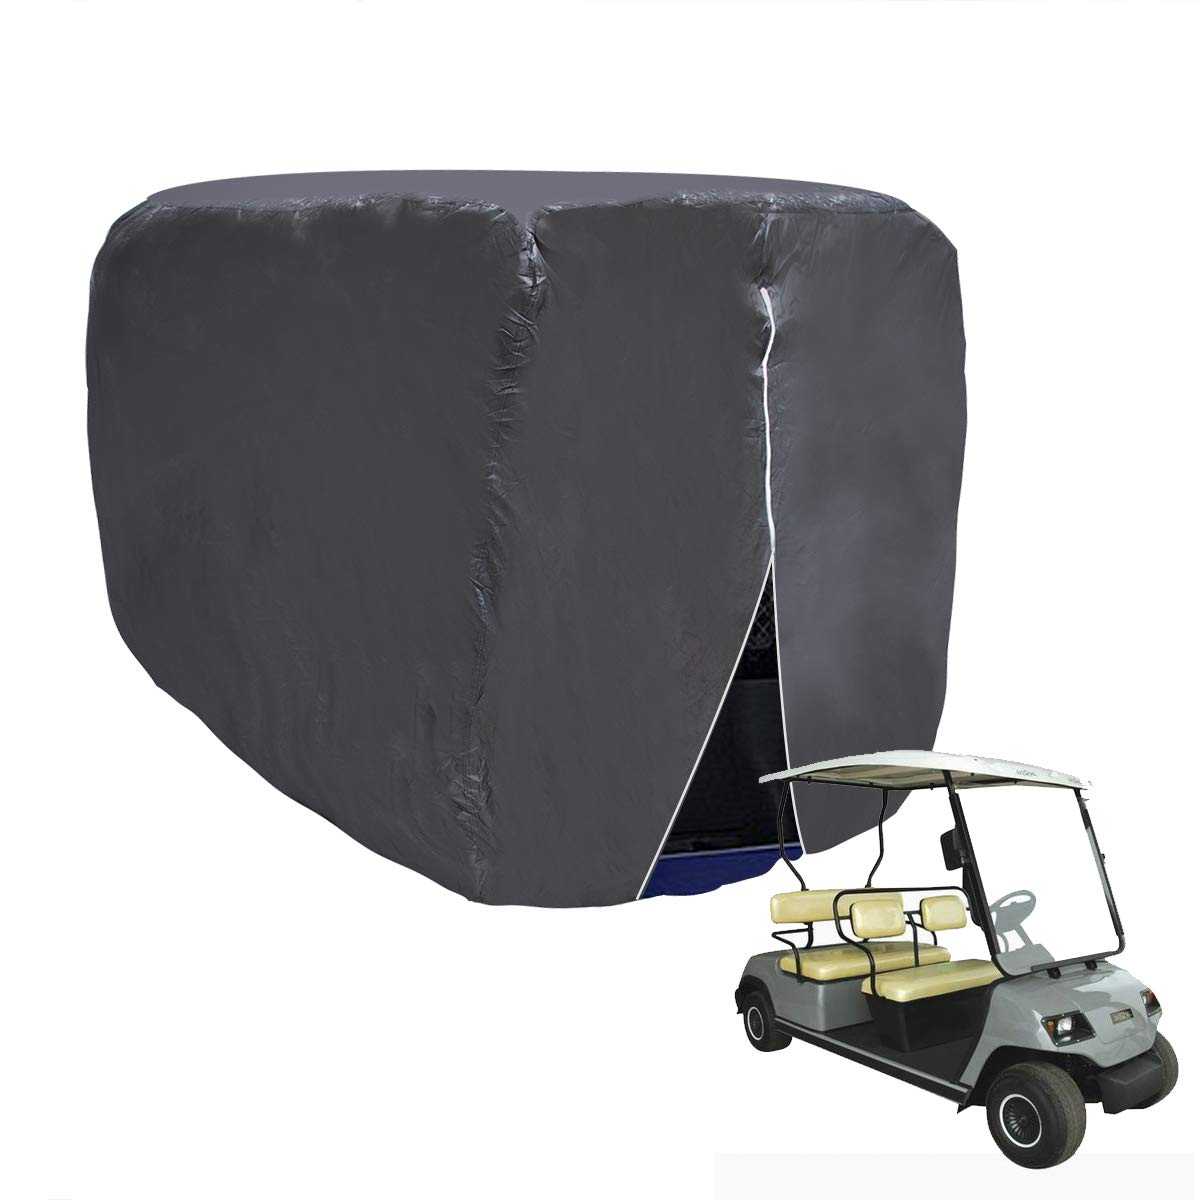 Wisamic Waterproof Golf Cart Cover - 4 Passengers Golf Cart